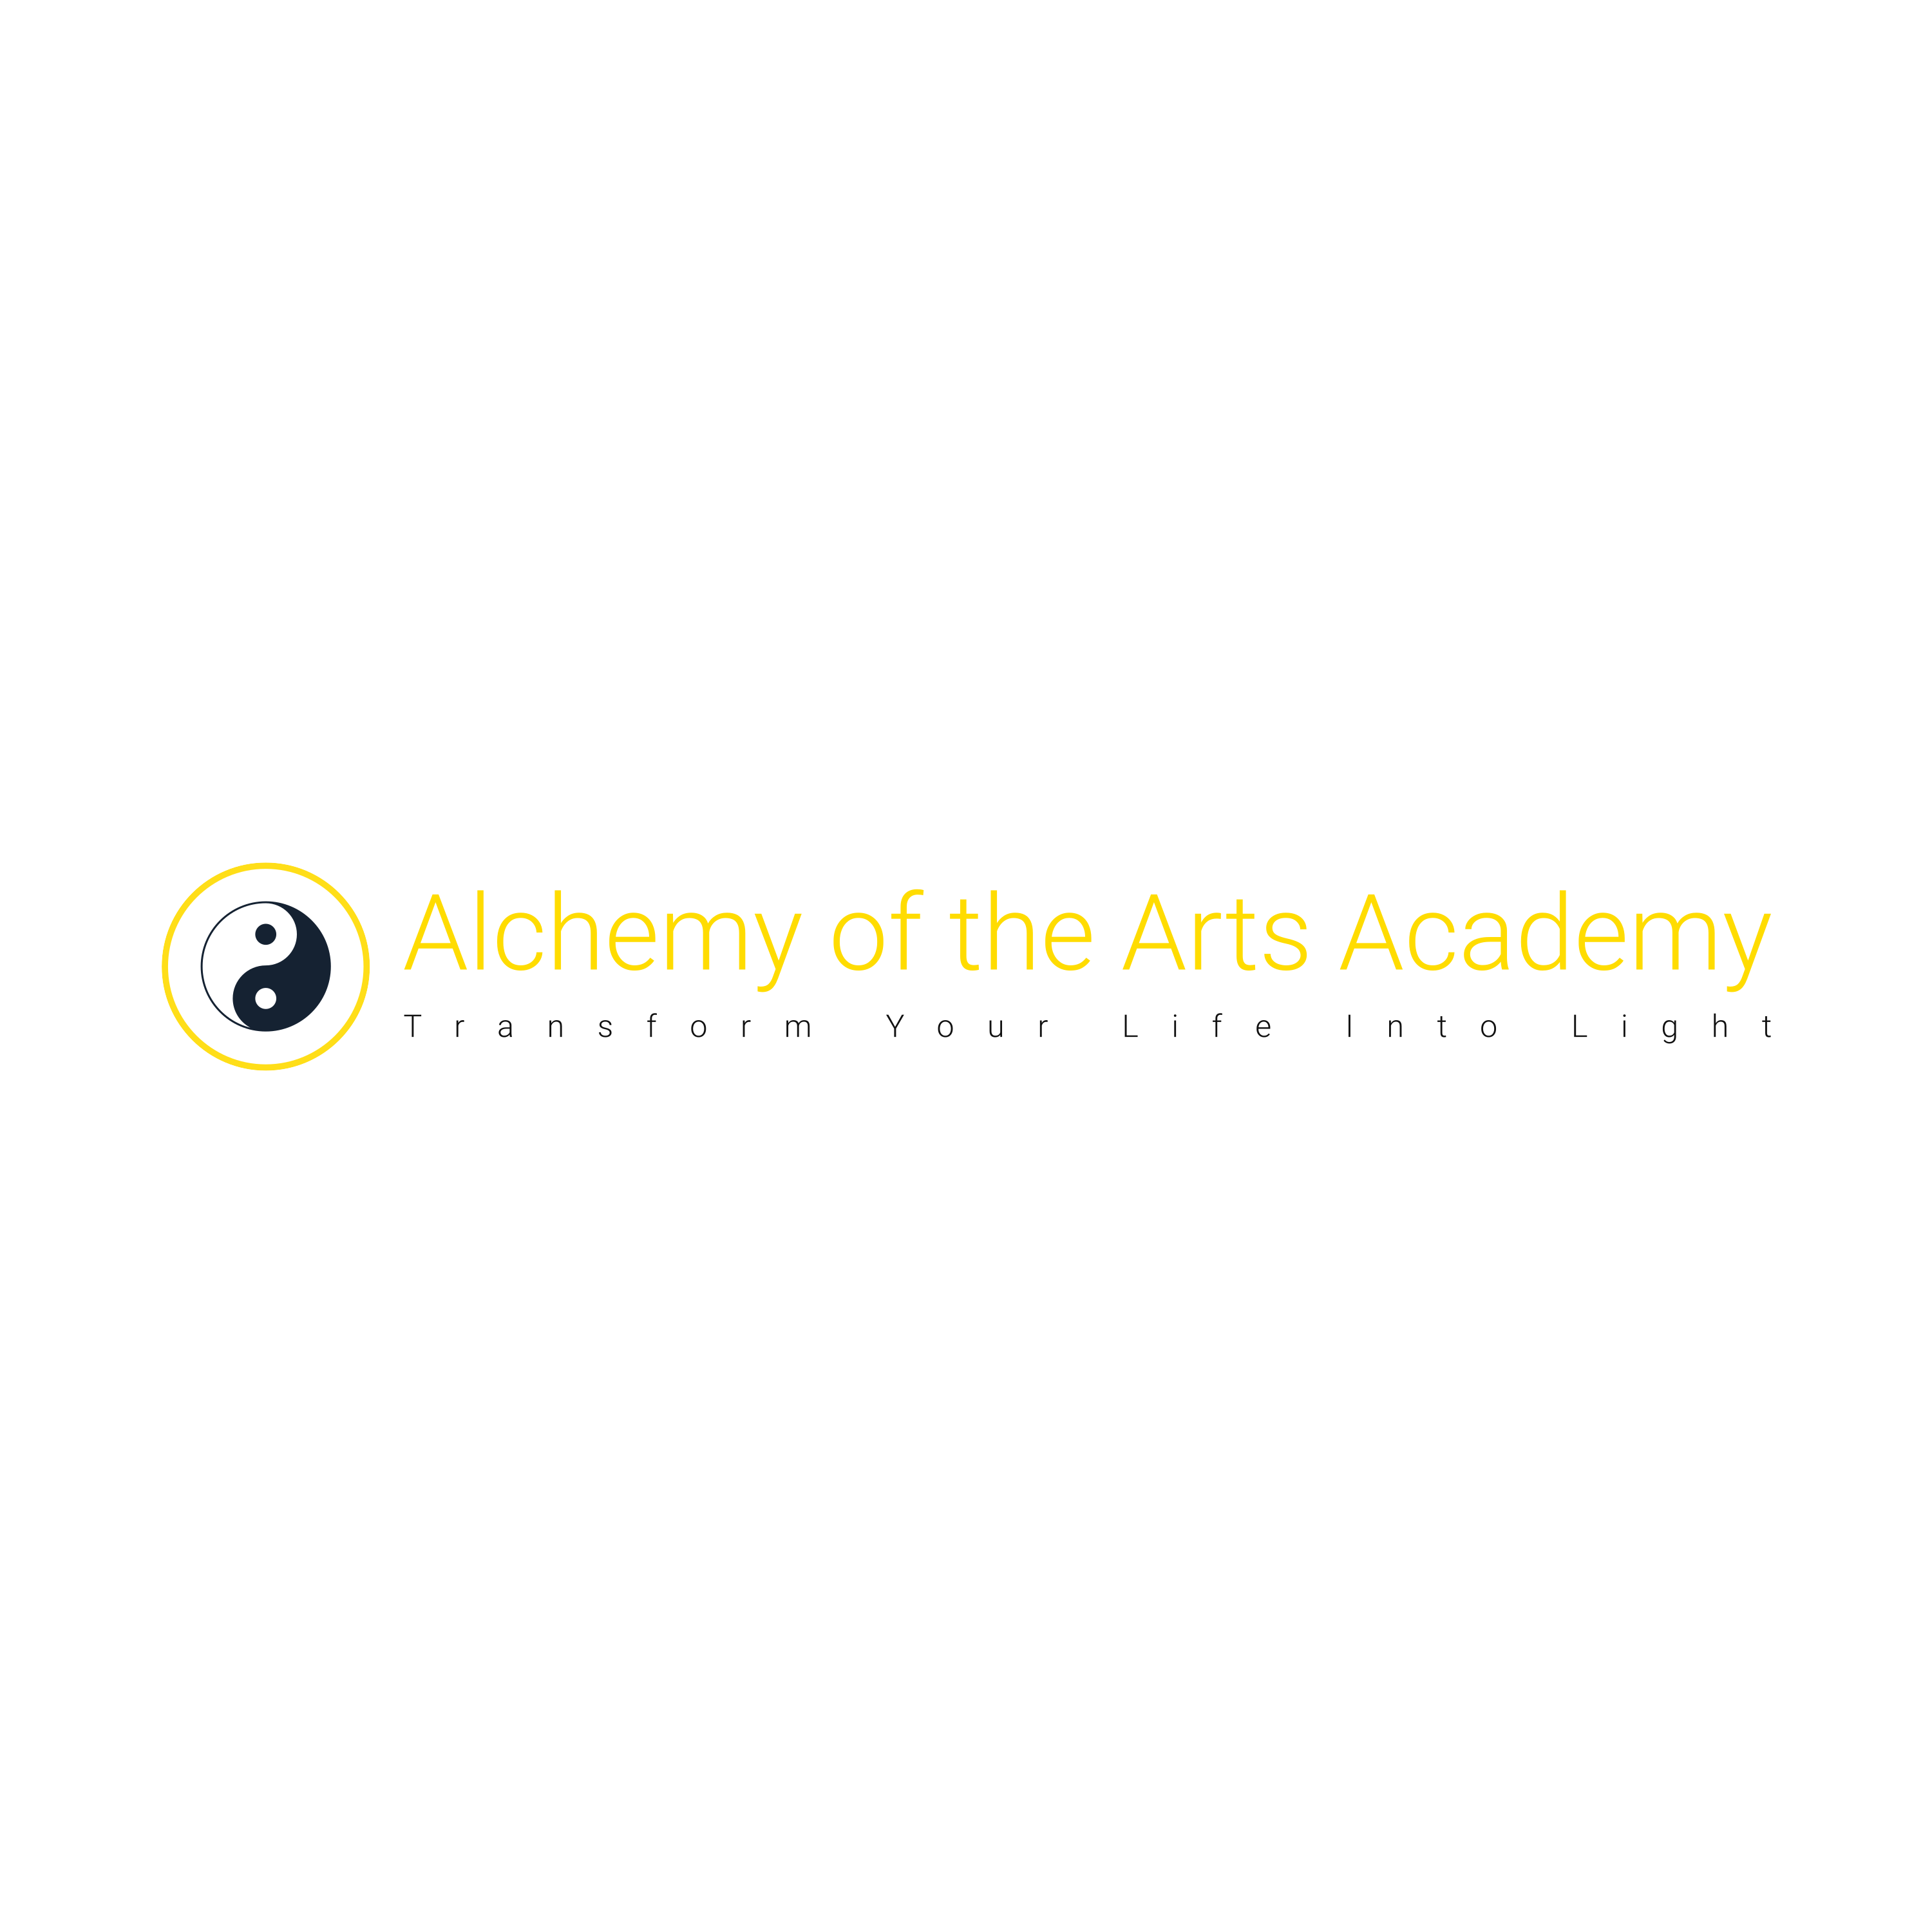 Alchemy of the Arts Academy